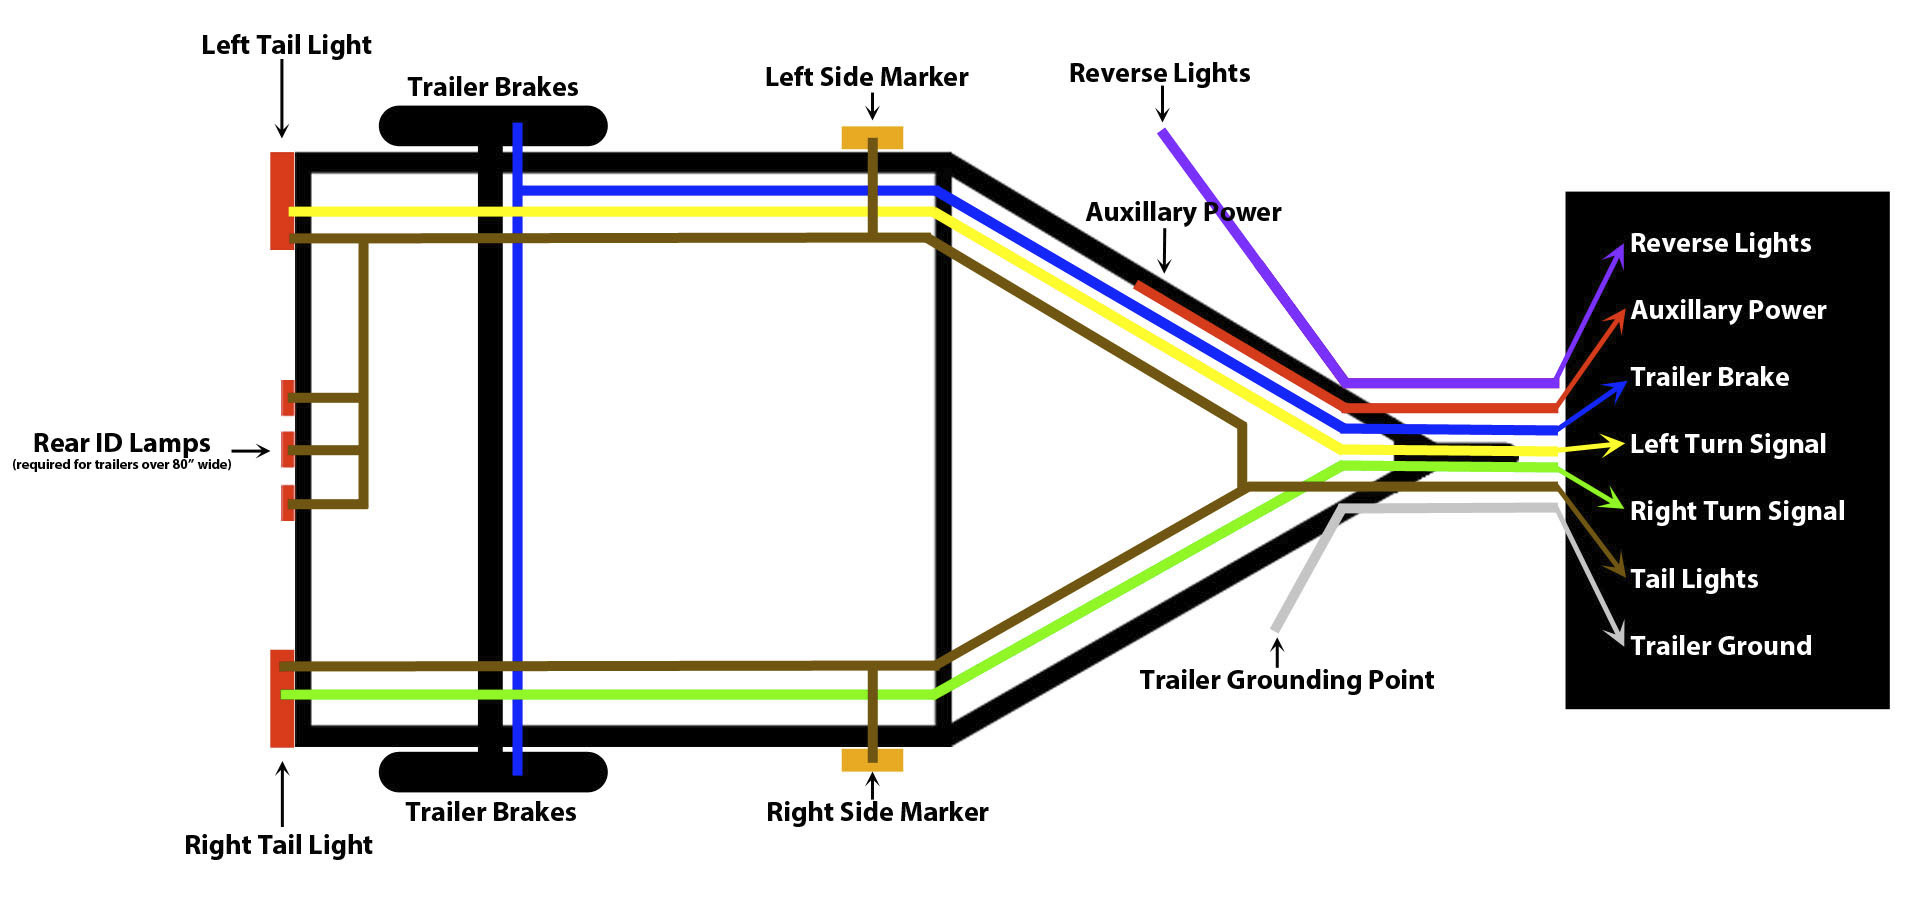 How To Wire Trailer Lights - Trailer Wiring Guide & Videos - 7 Way Trailer Diagram Wiring